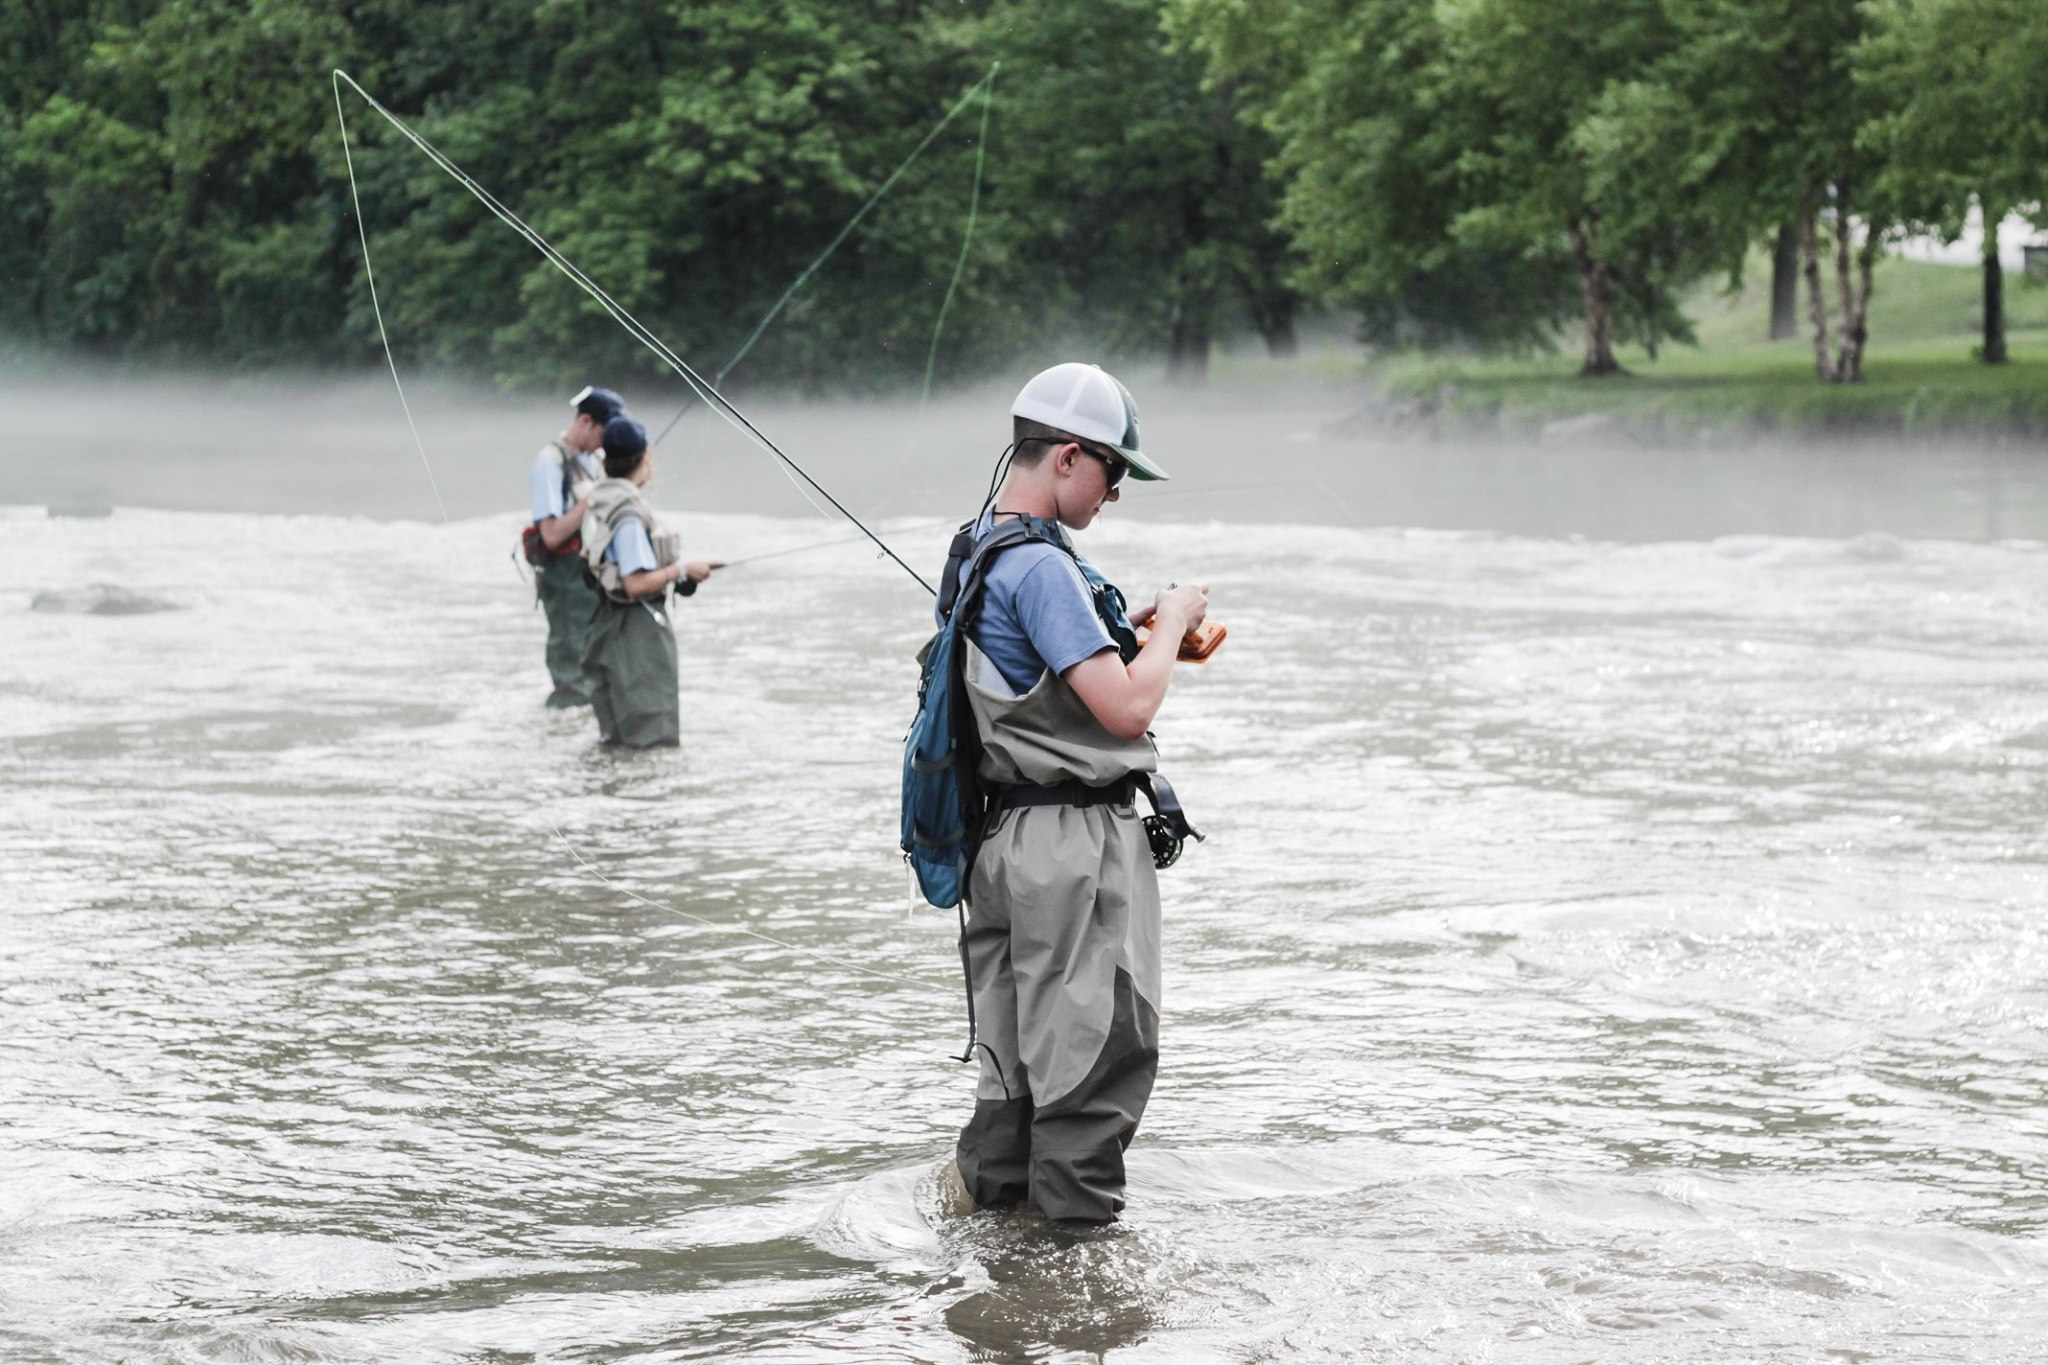 Three young anglers standing in a stream fly fishing.